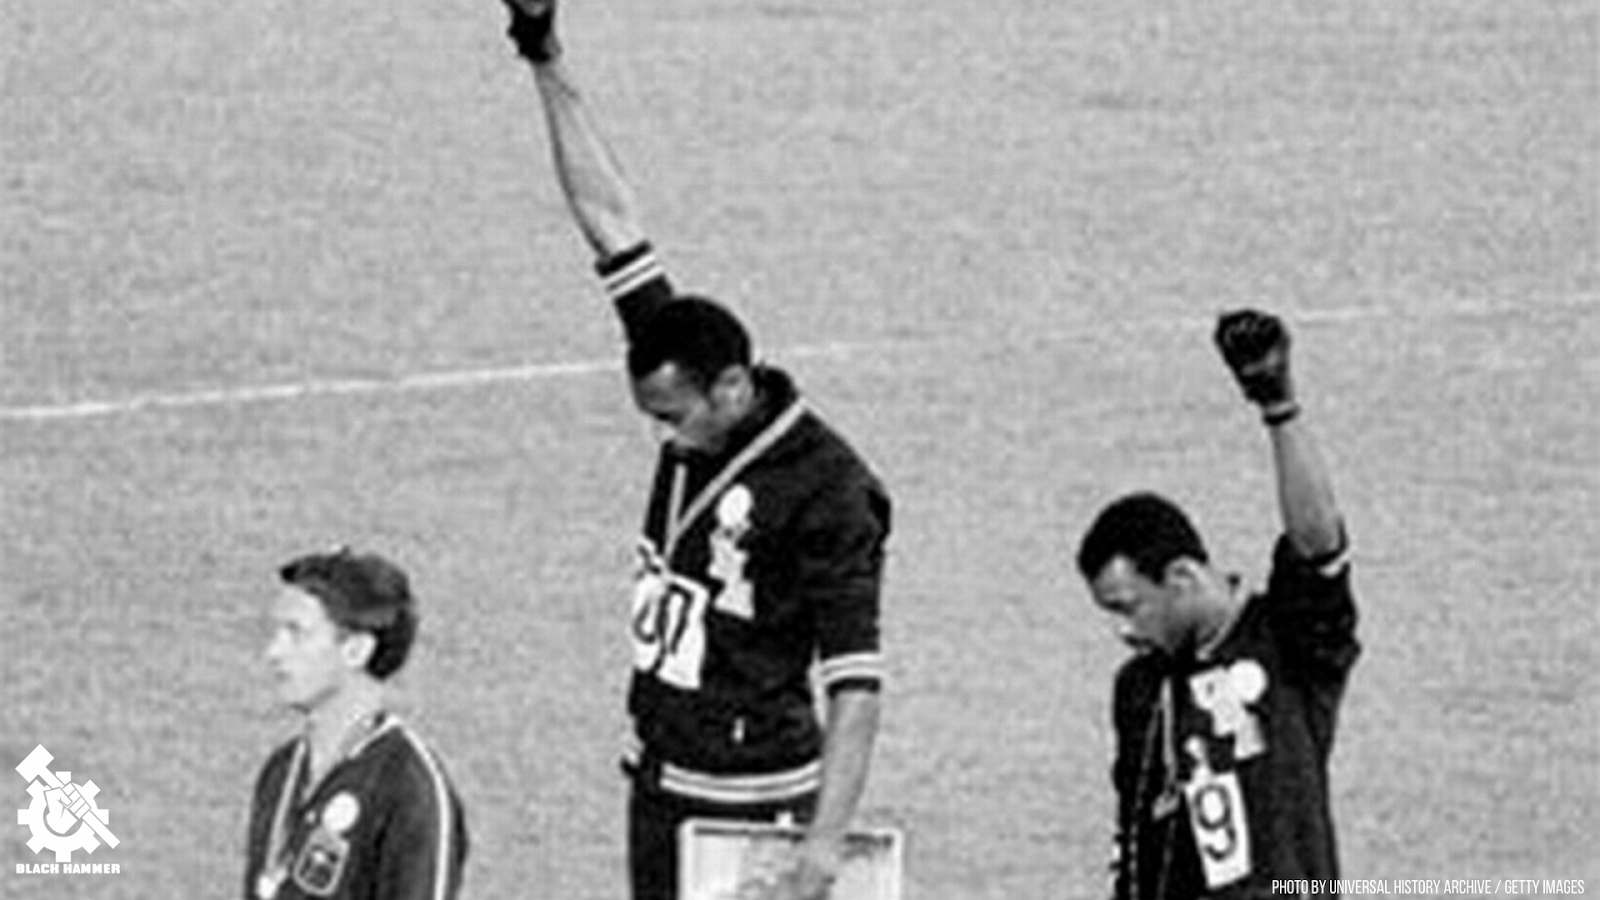 1968 Olympics: Tommie Smith (centre) and John Carlos (right) with fists raised on the podium in Mexico City